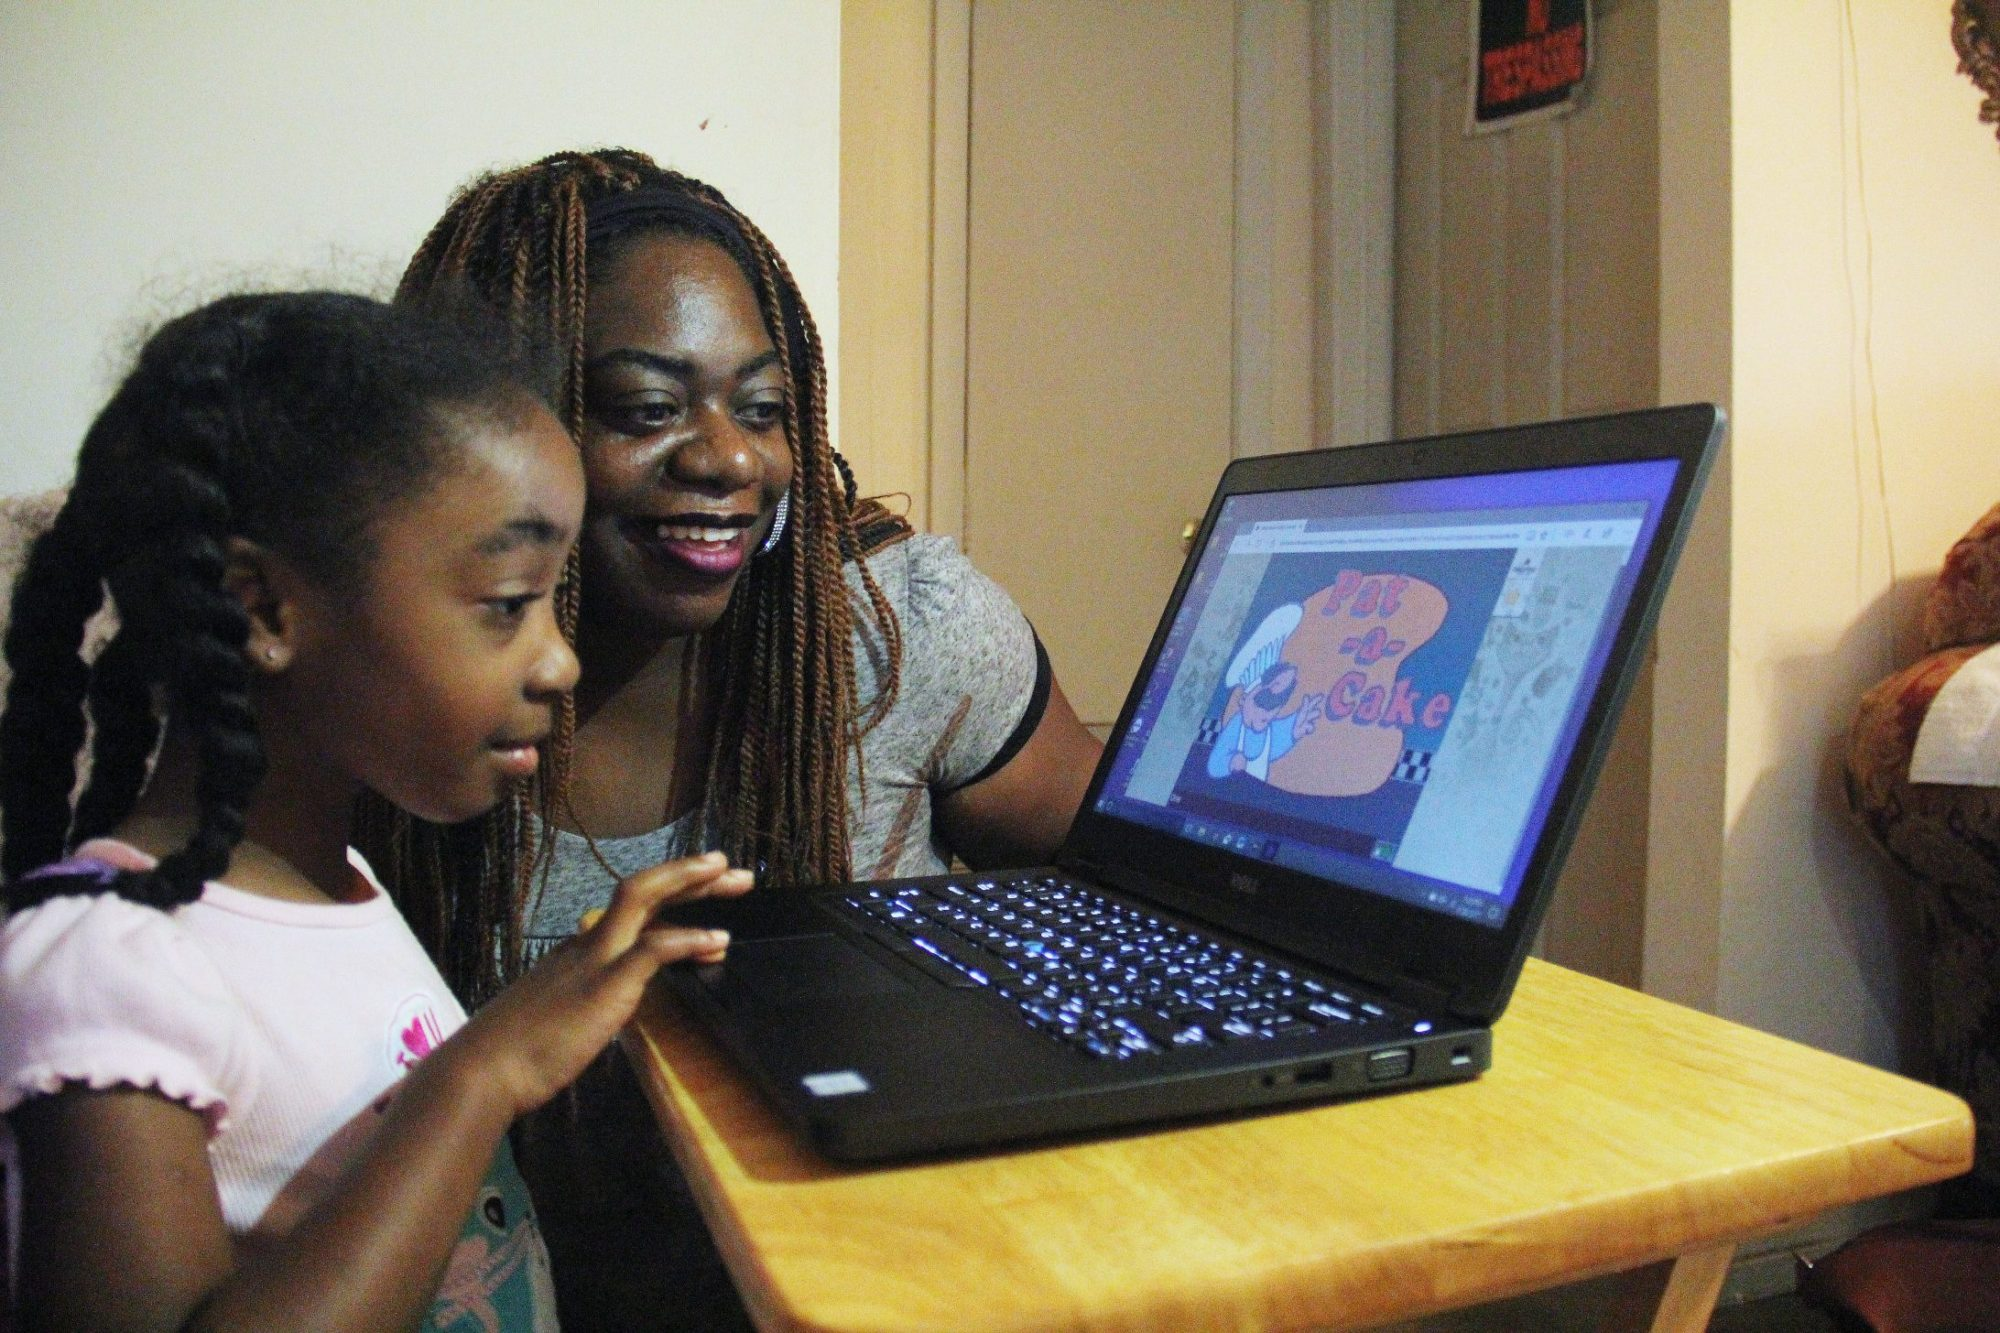 Experts Call For An End To Online Preschool Programs